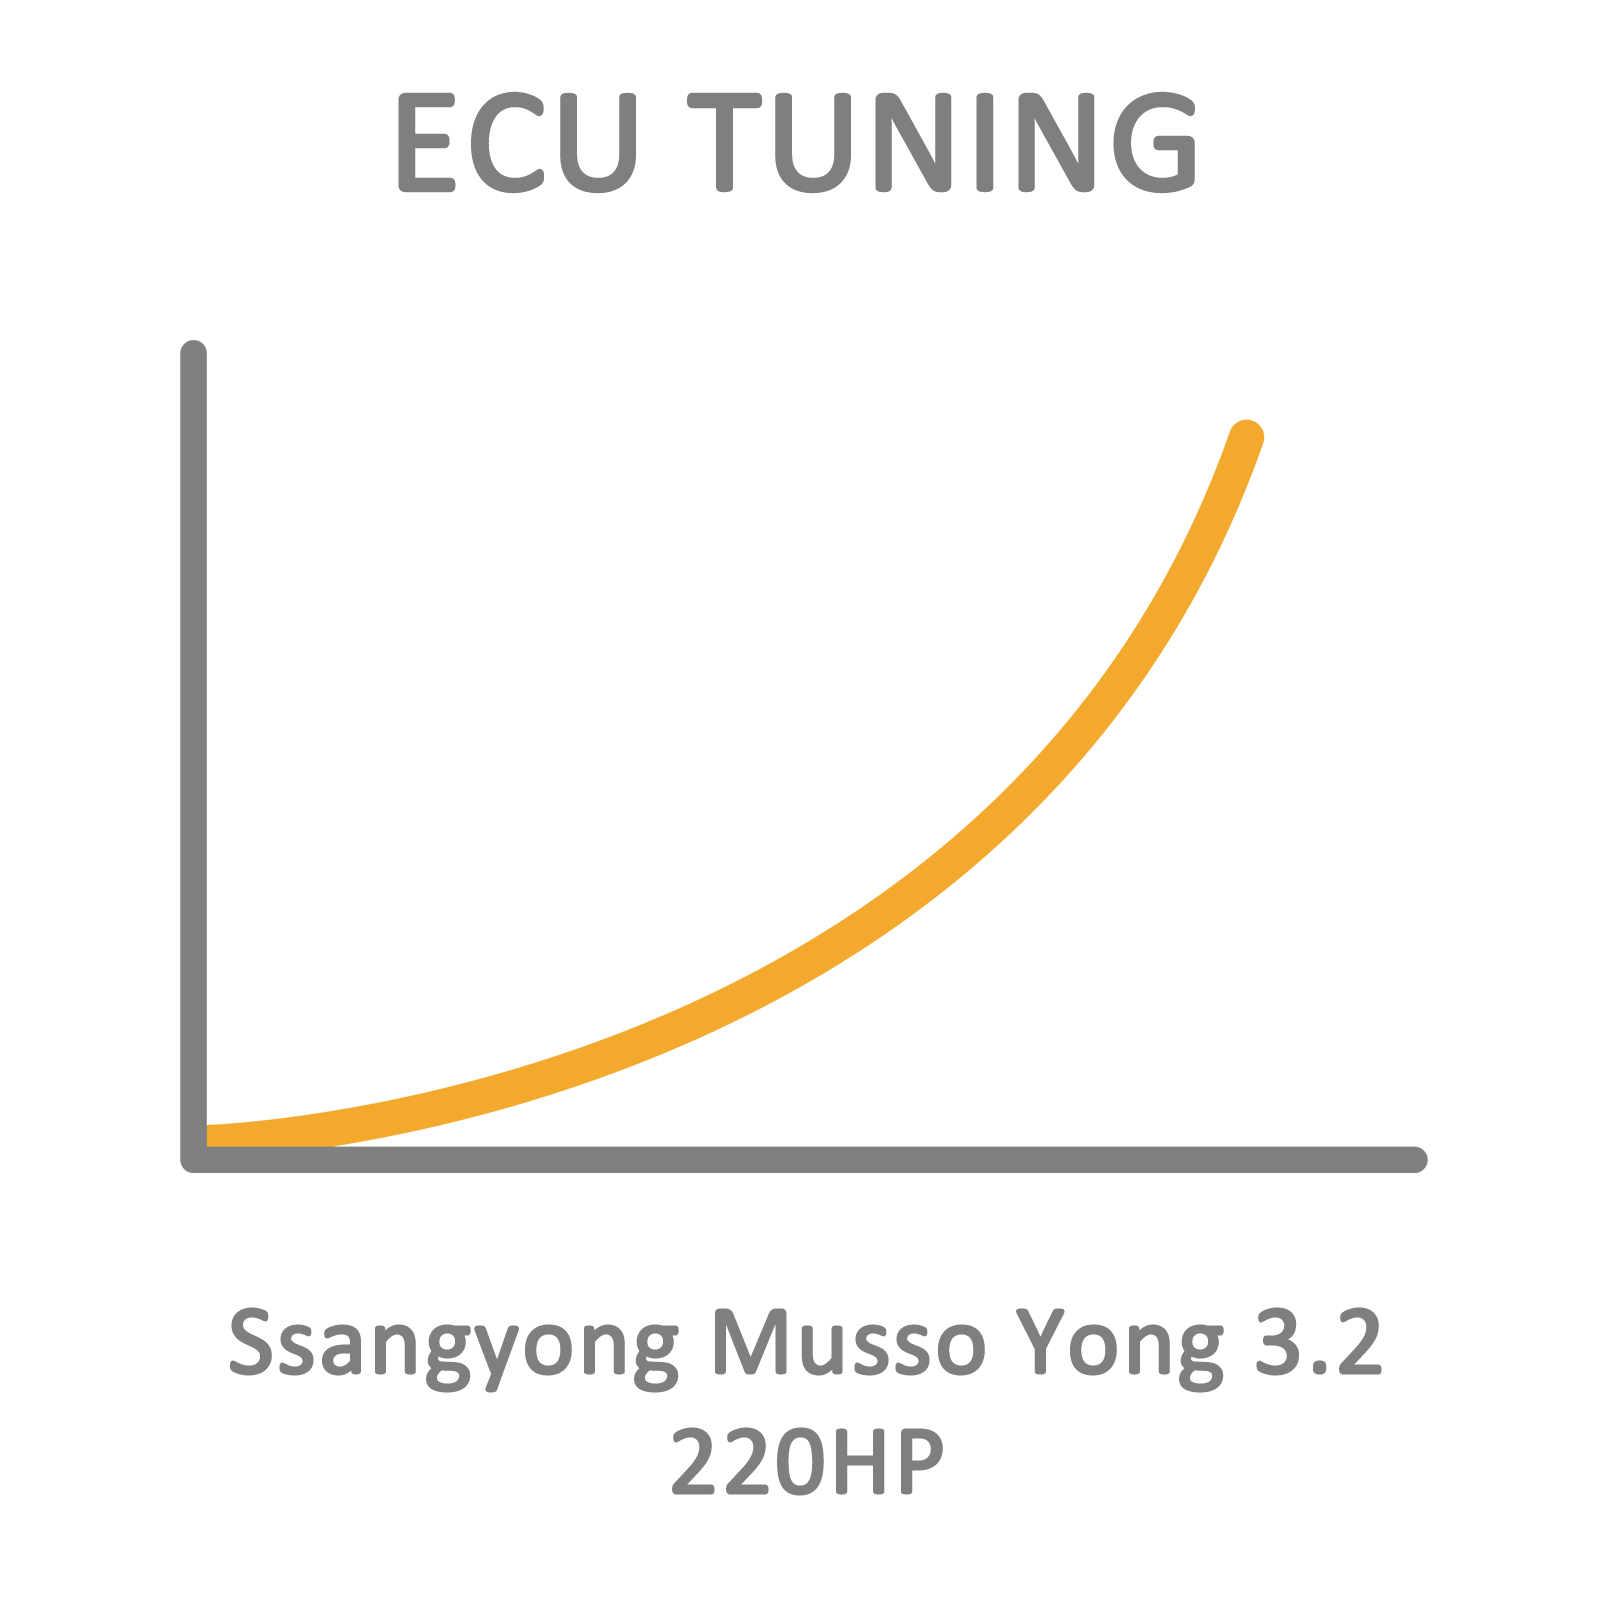 Ssangyong Musso Yong 3.2 220HP ECU Tuning Remapping